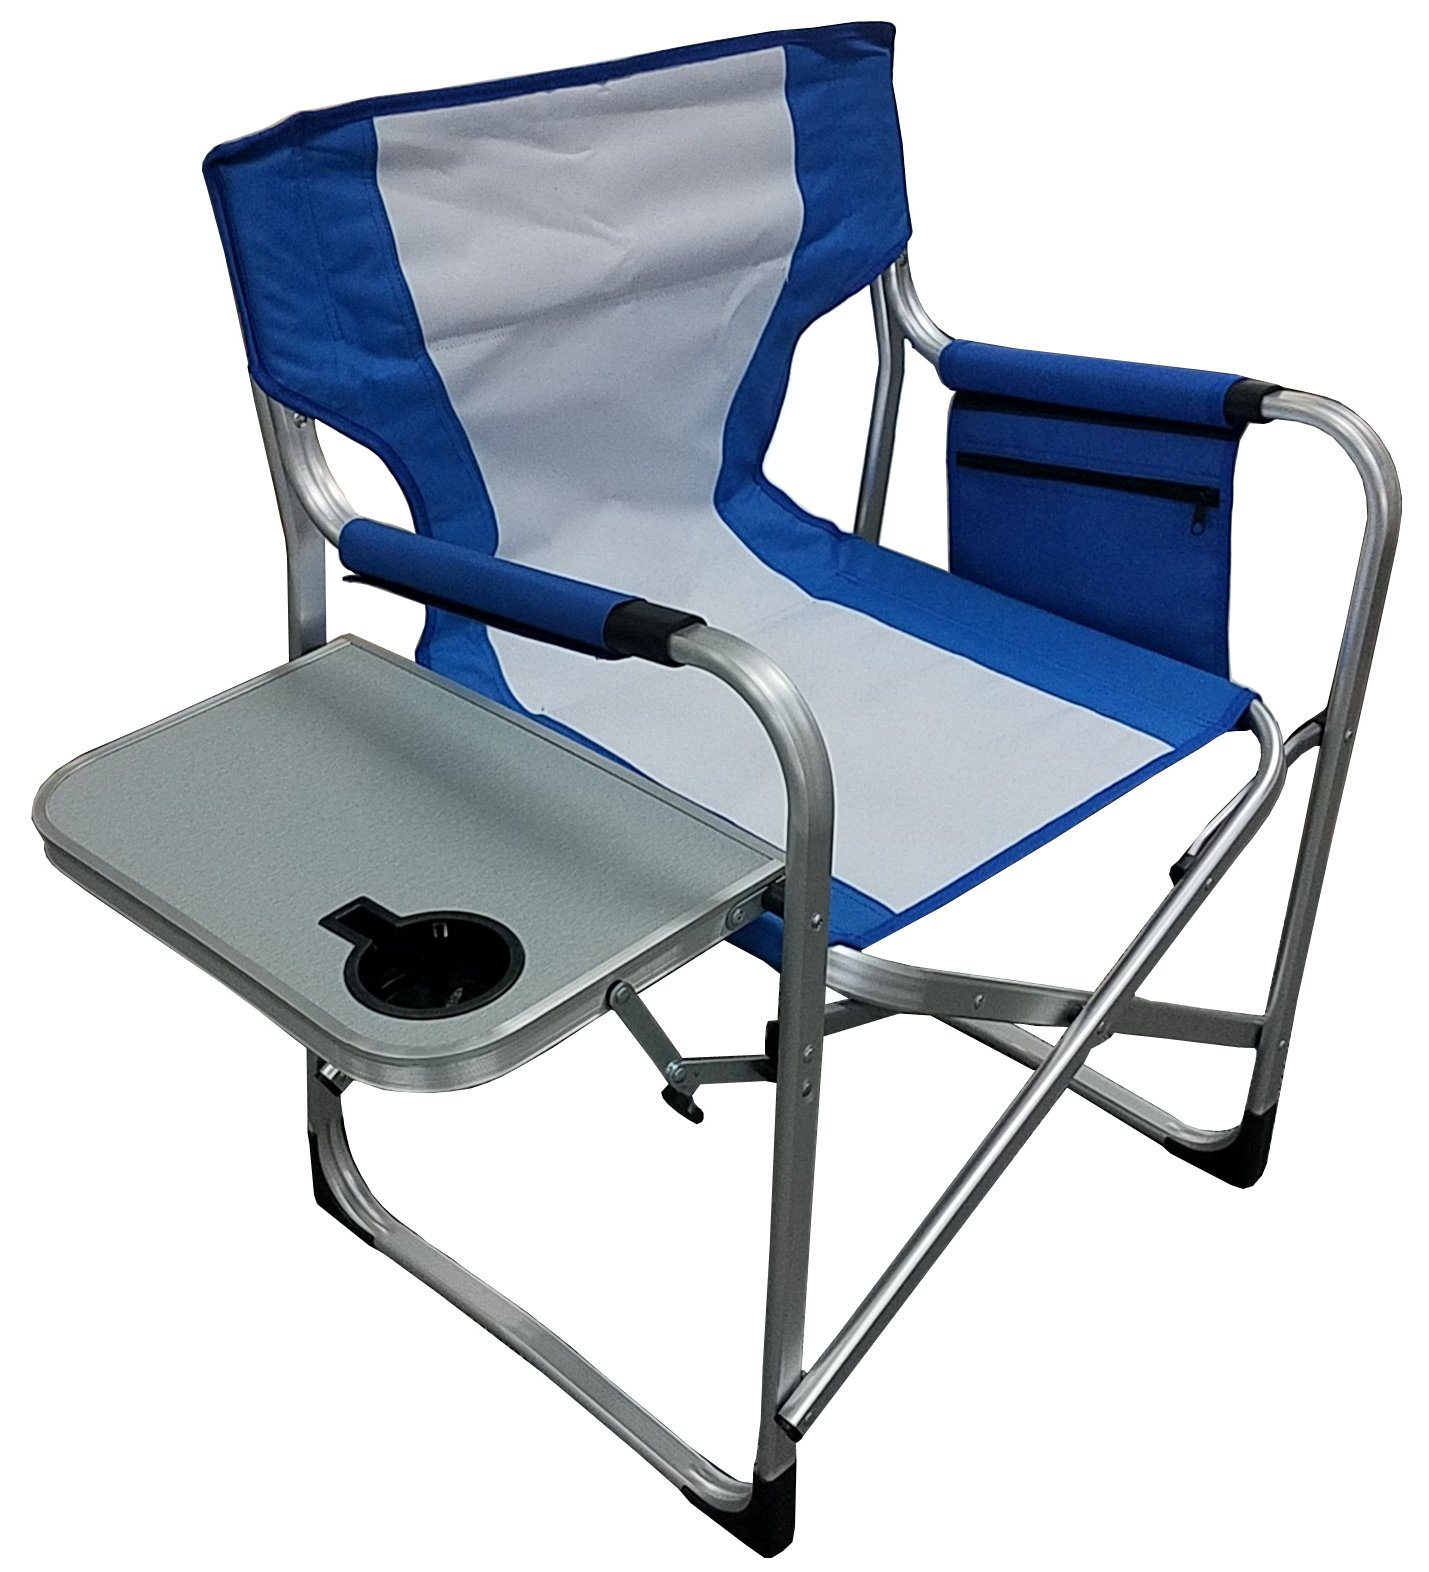 Folding Camp Chair With Side Table China Outdoor Folding Camping Chair Director Chair Aluminium With